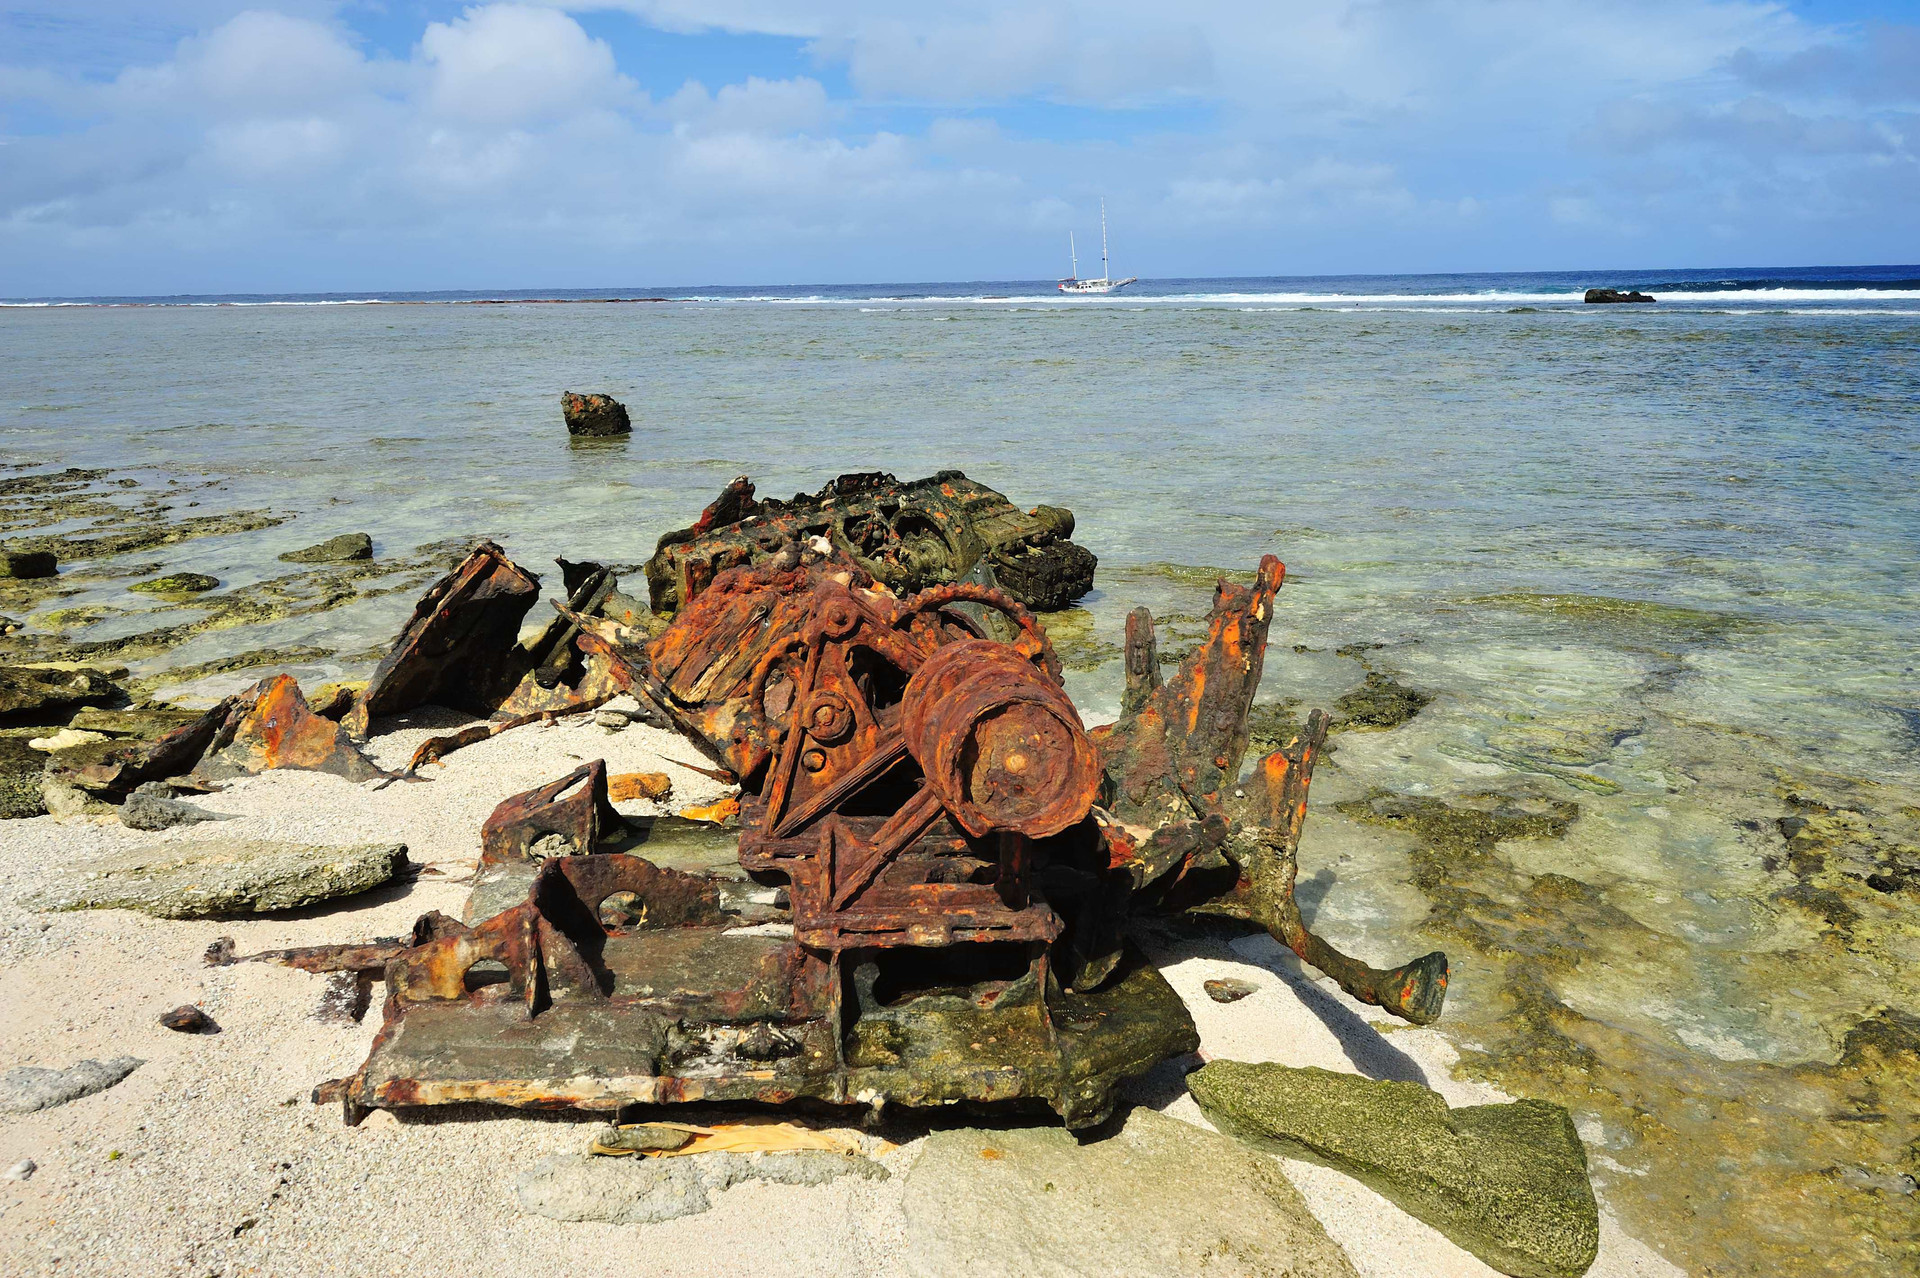 Remains of another wreck